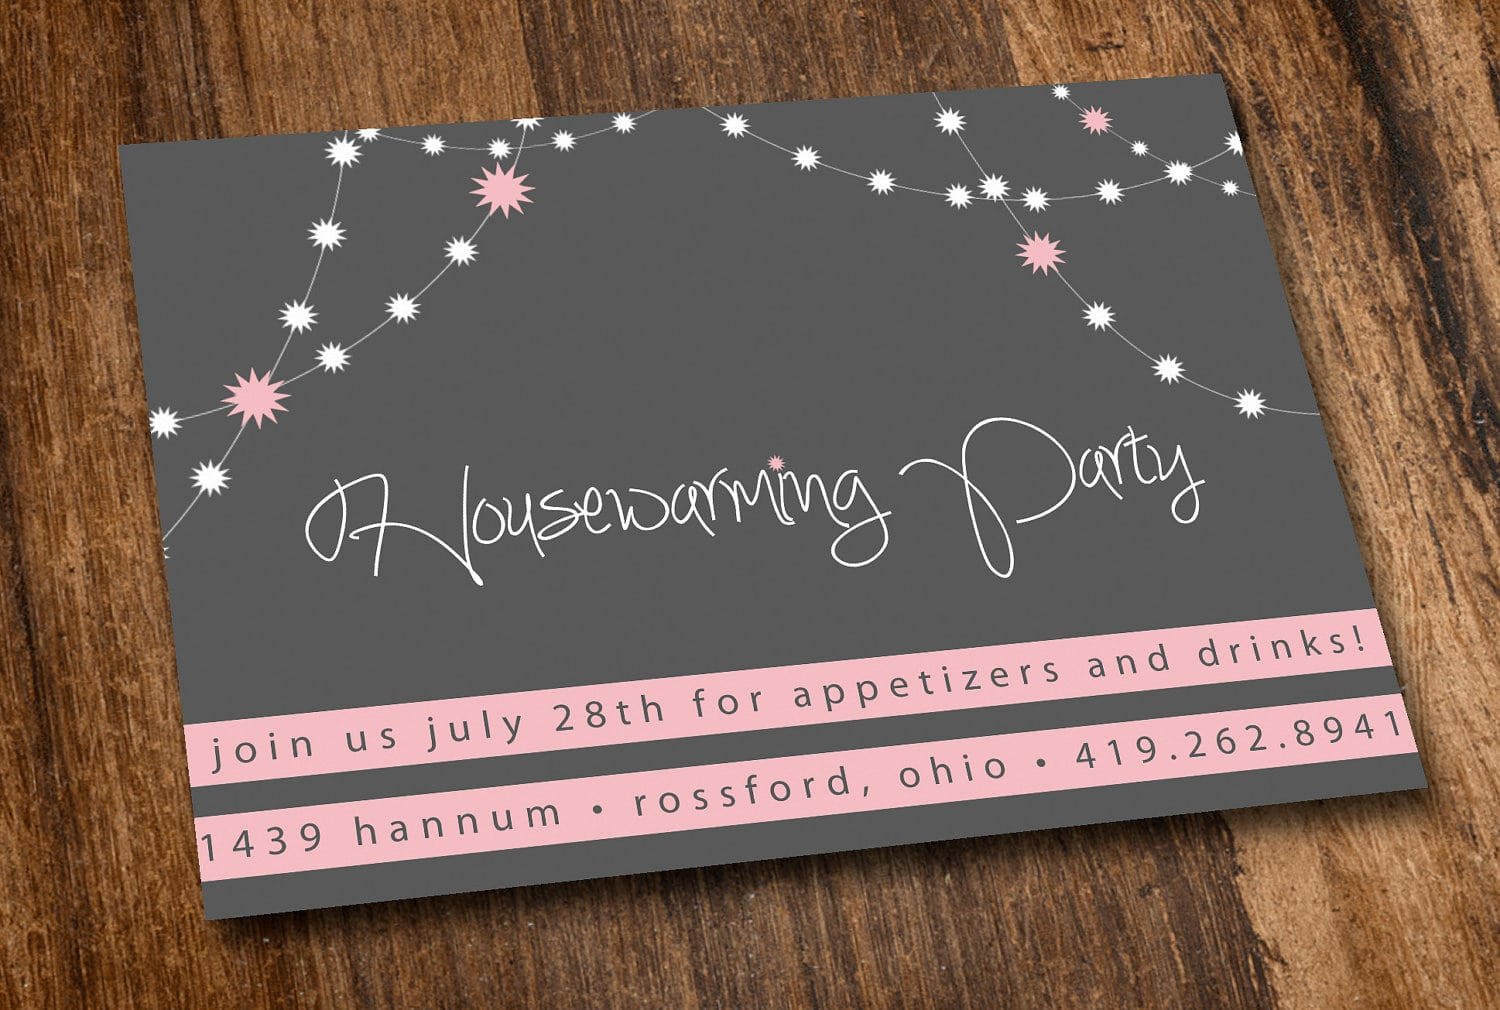 housewarming party invites free template - housewarming invitation cards